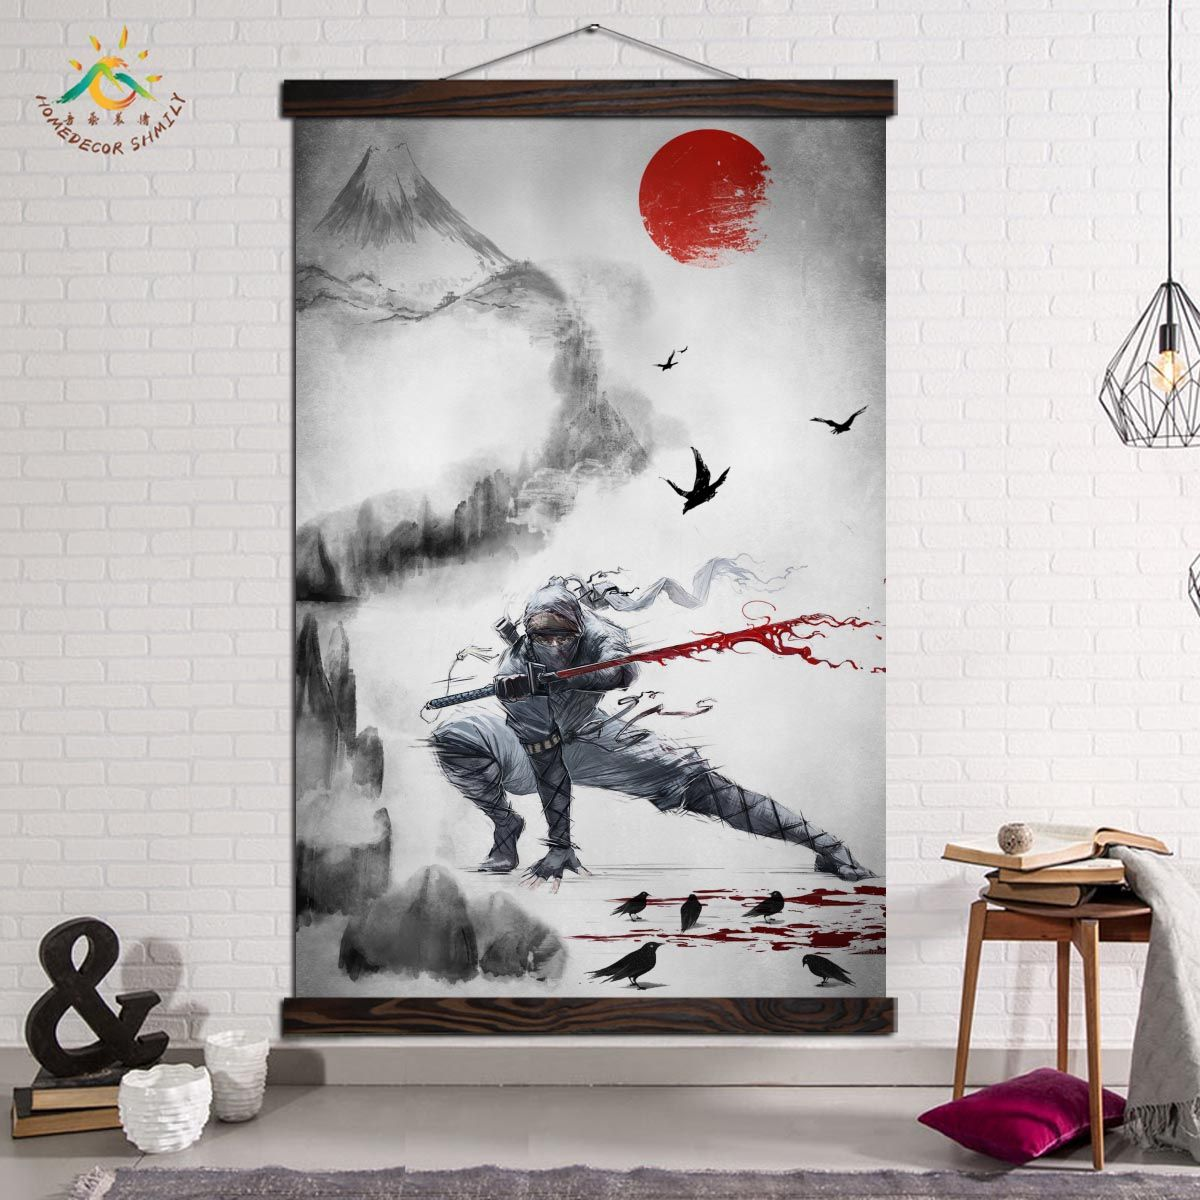 Wall Art Prints And Posters Modern Art Canvas Painting Poster Vintage Wall Art Pictures Home Decoration Dark Cool Ninja Samurai In 2020 Modern Canvas Art Modern Art Canvas Painting Wall Art Pictures